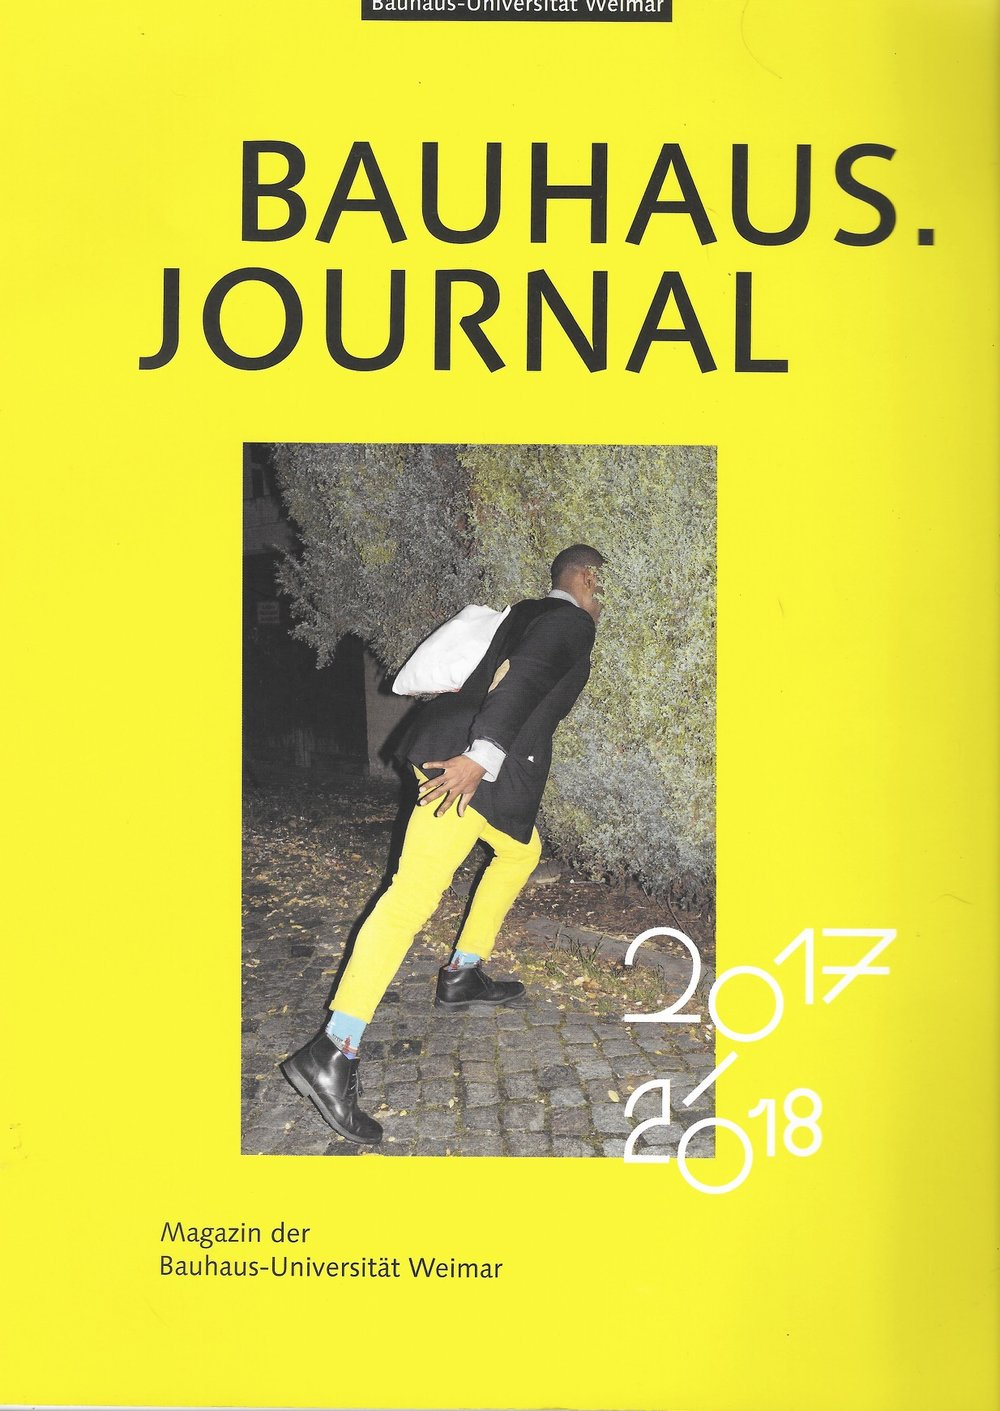 Bauhaus Journal Cover 2017/18